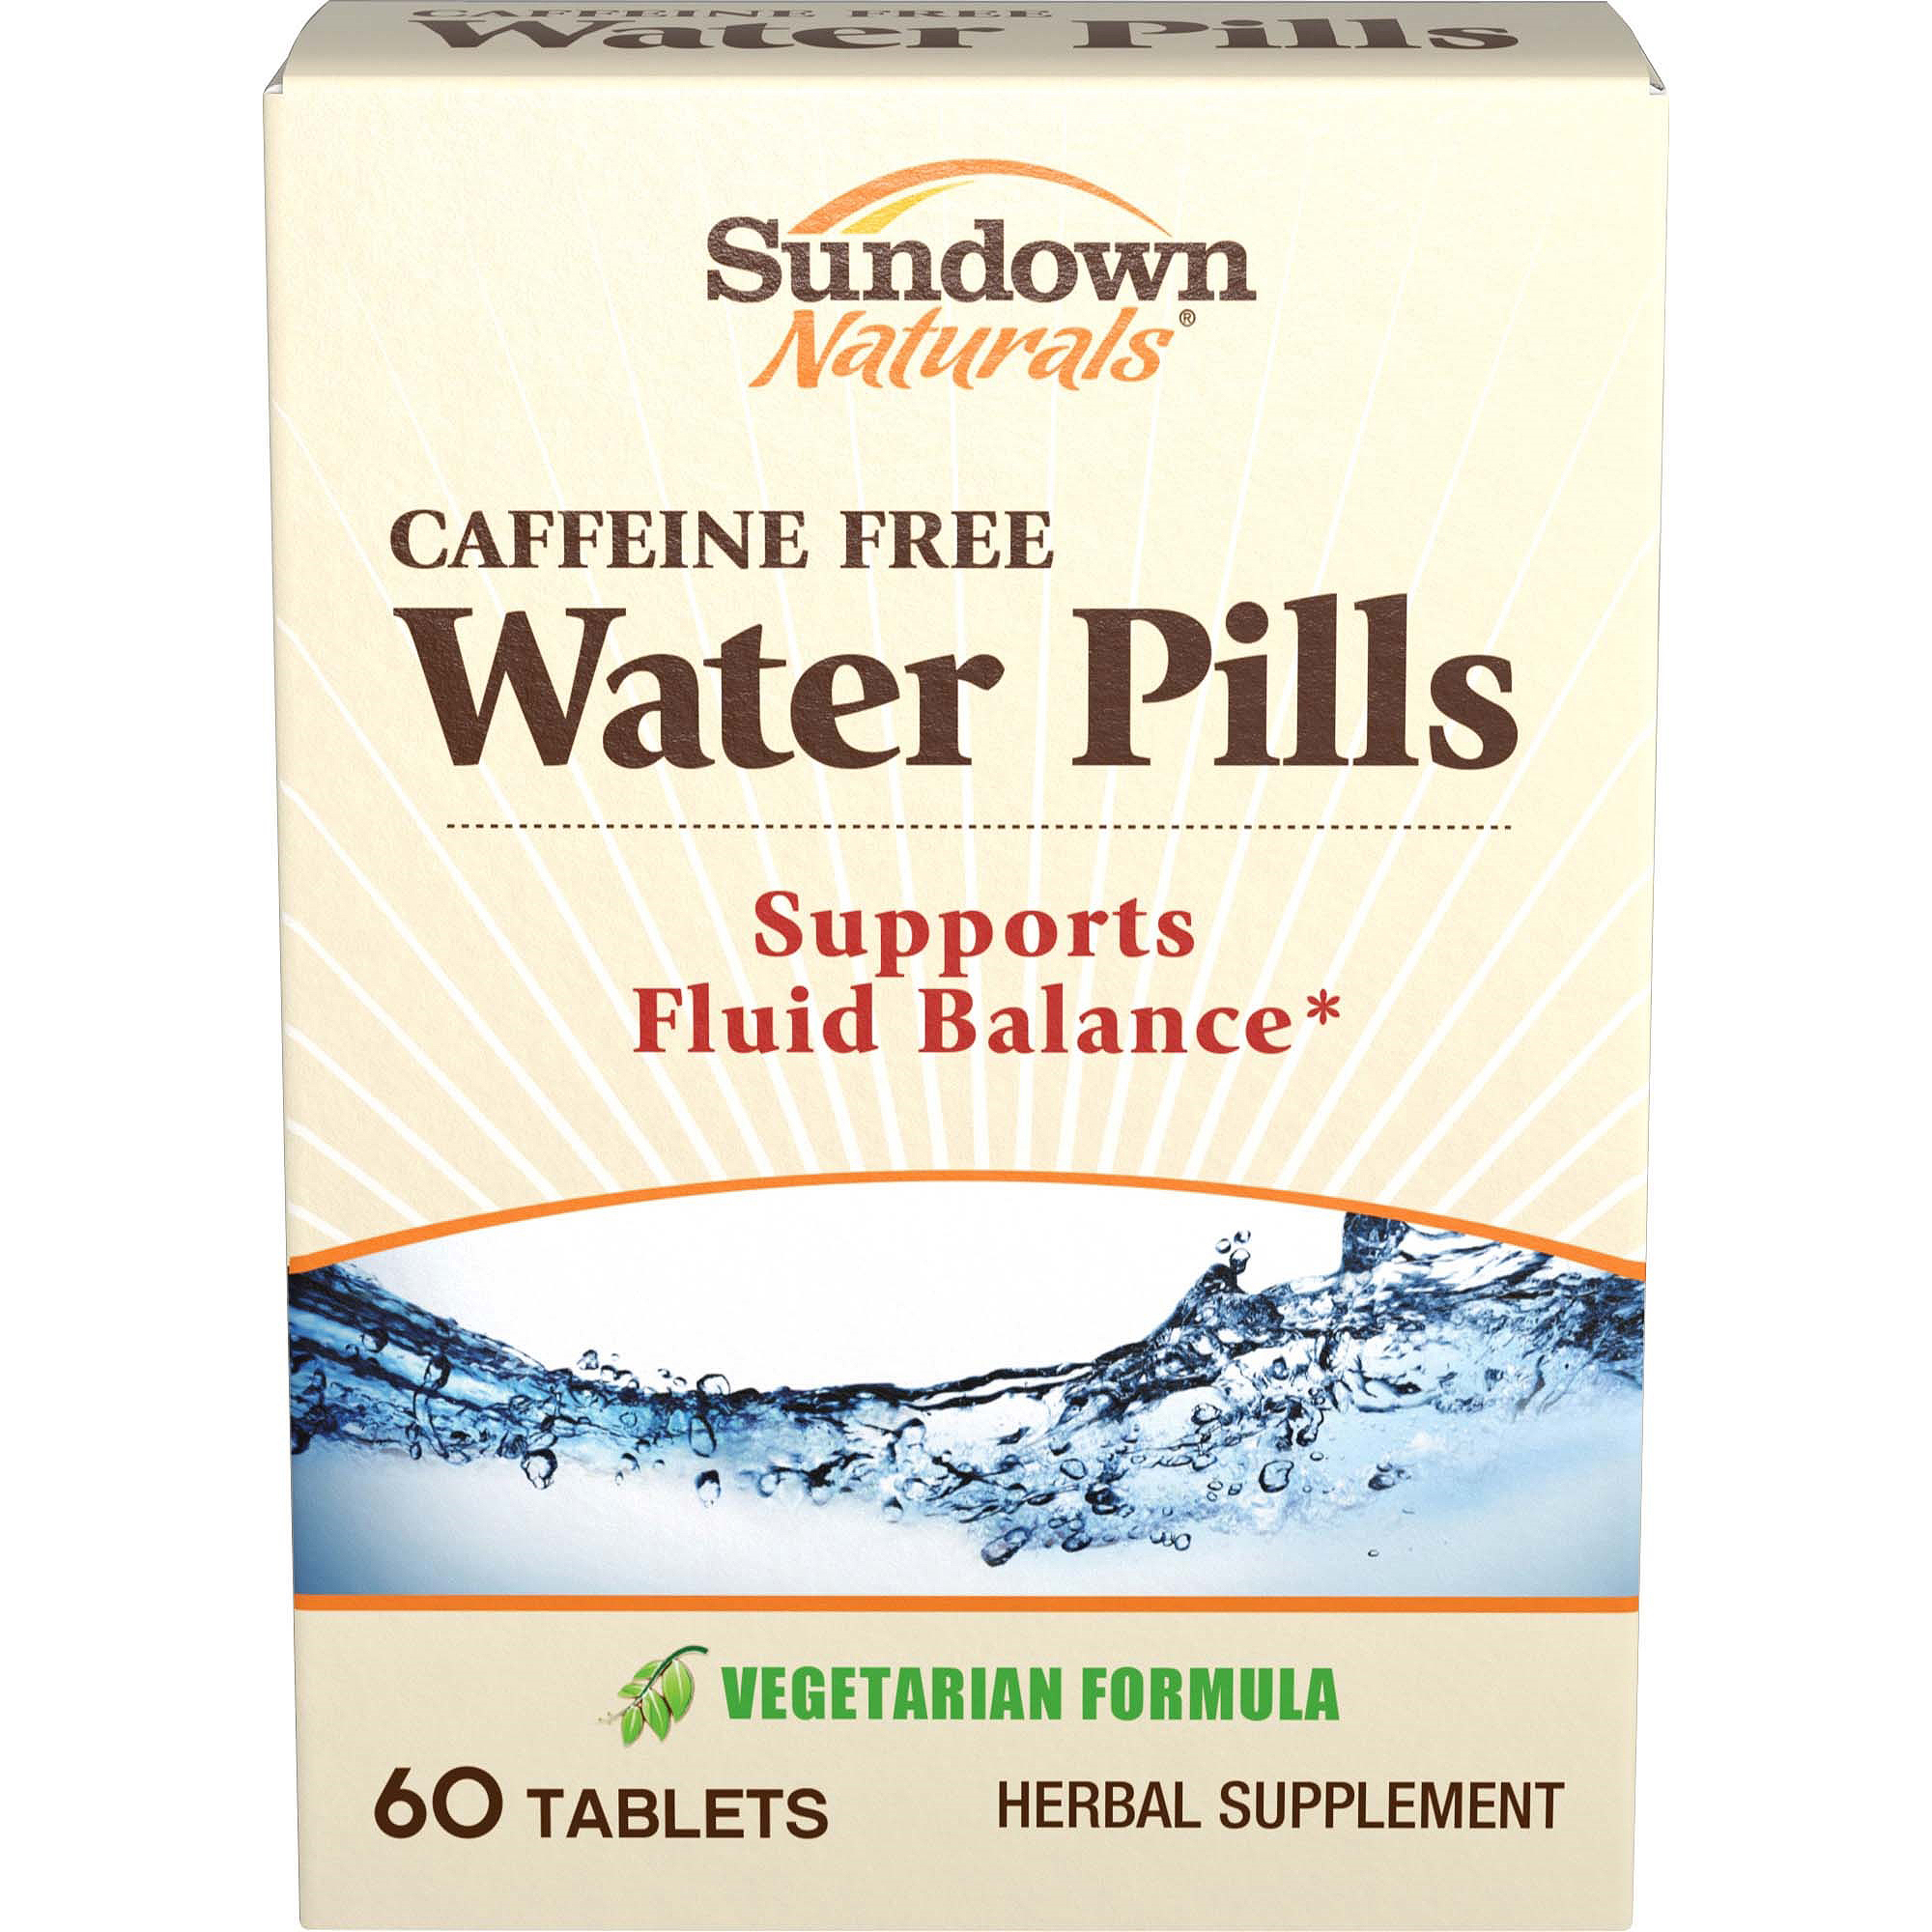 Sundown Naturals Natural Water Pills Herbal Supplement, 60 Count